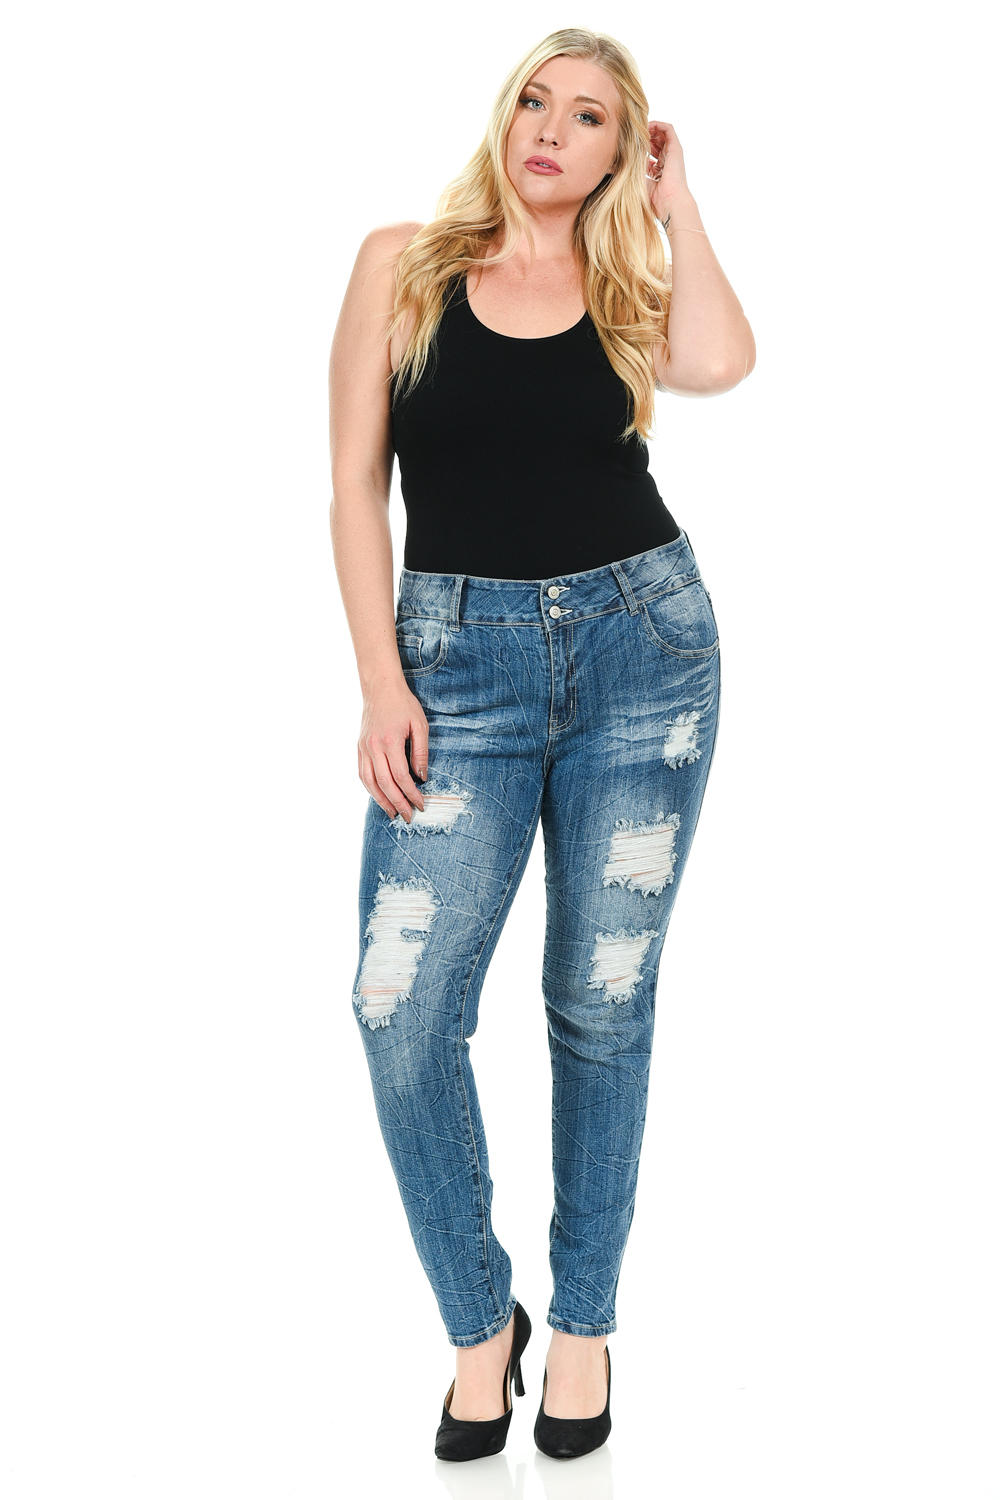 Sweet Look Premium Edition Women's Jeans - Plus Size - High Waist - Skinny - Style N528H-R